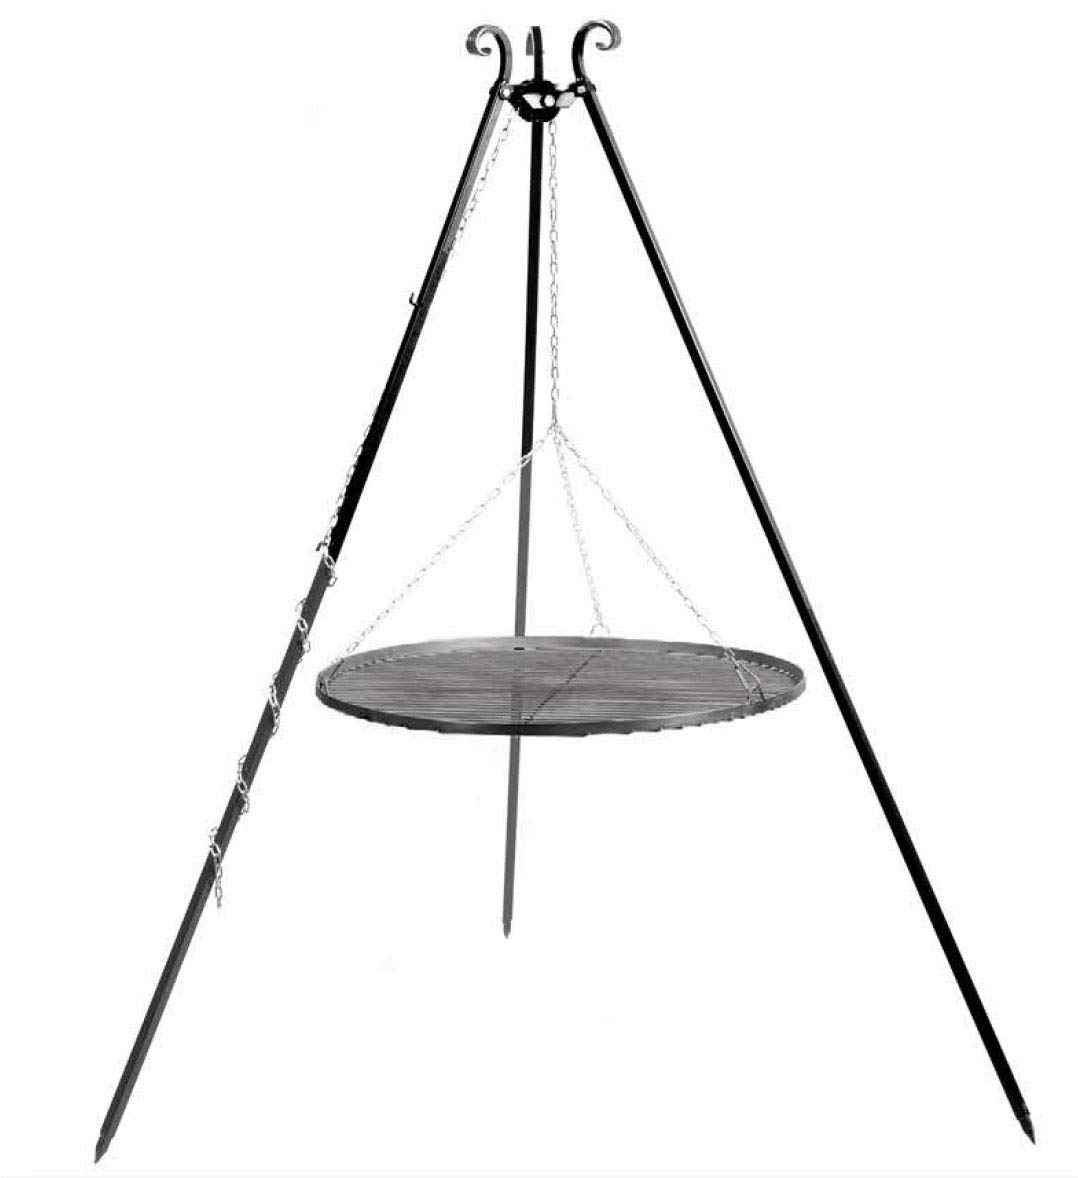 Lomia 180cm Heavy Duty Tripod with chain pulley and black steel grate for Fire Pit Fire bowl and Out door BBQ Cook King